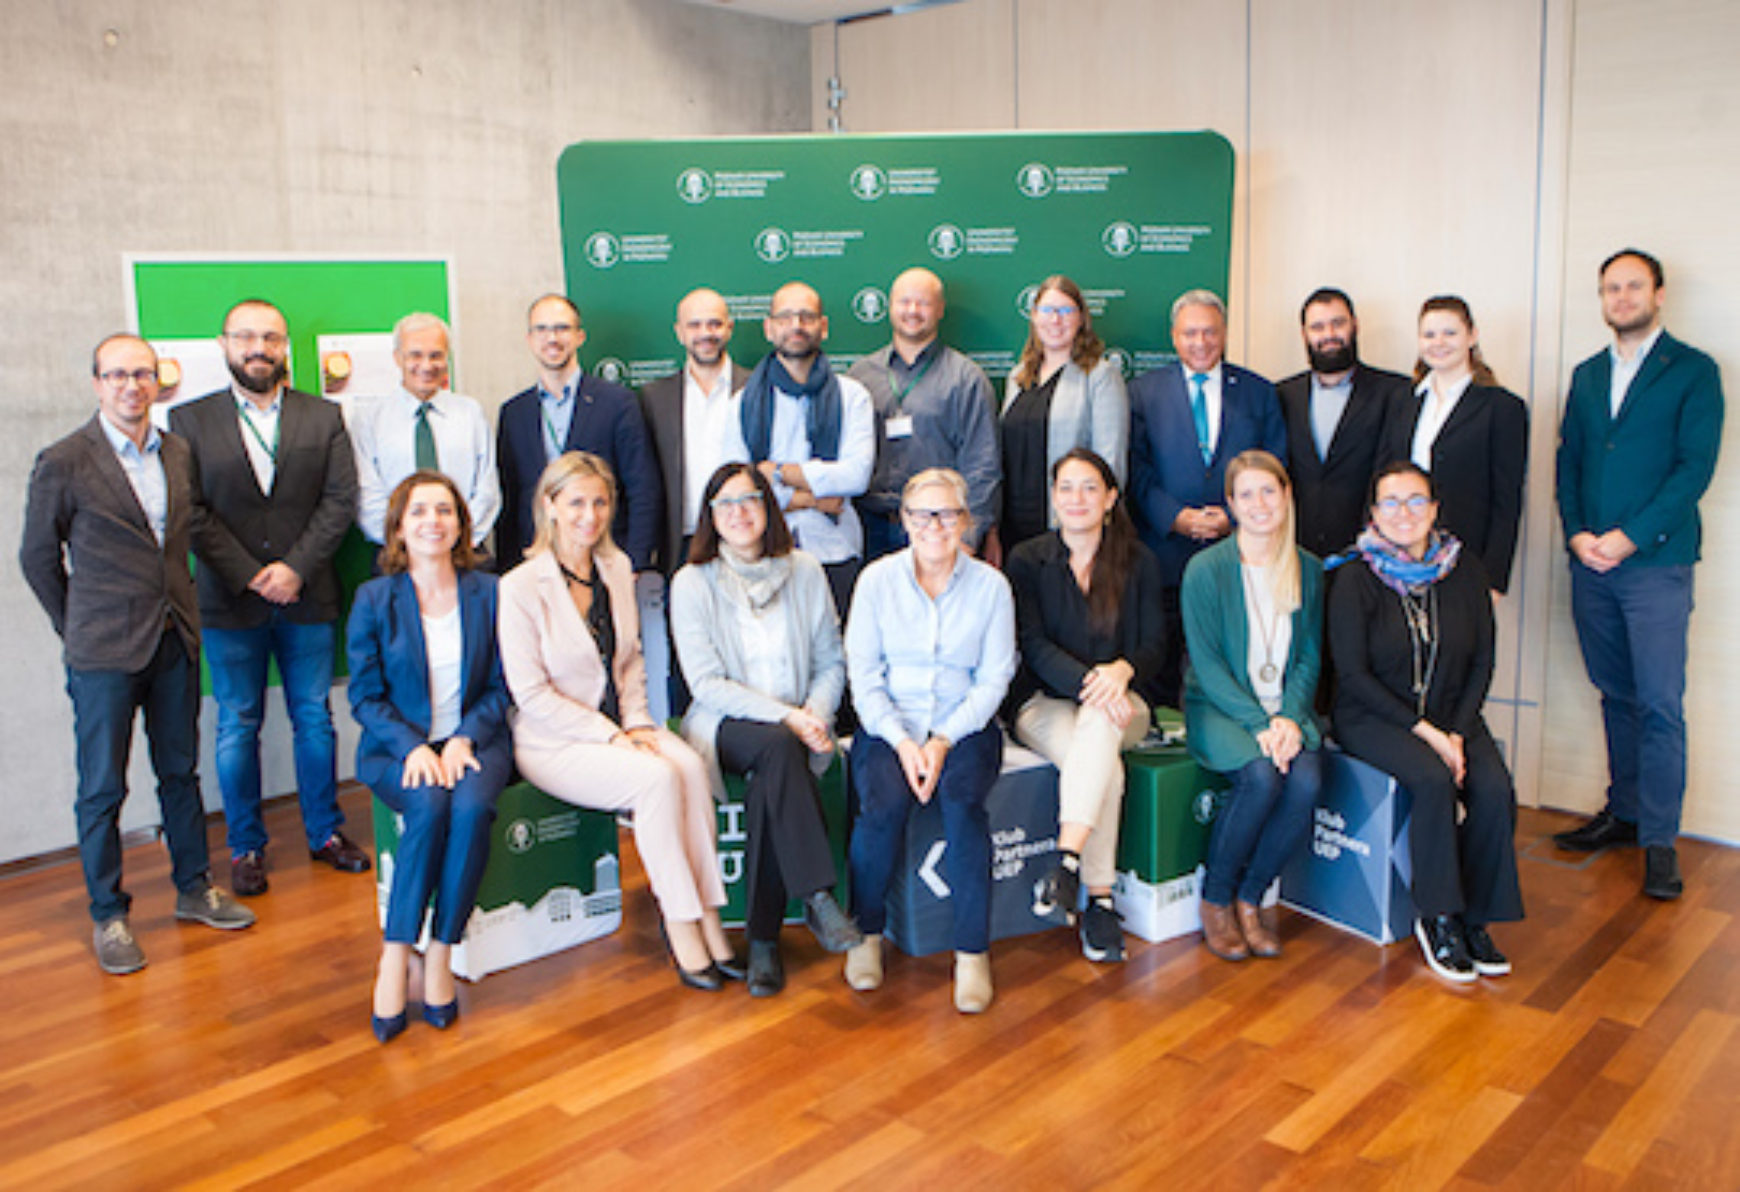 Gastronomy and local development discussed at FOODBIZ final conference